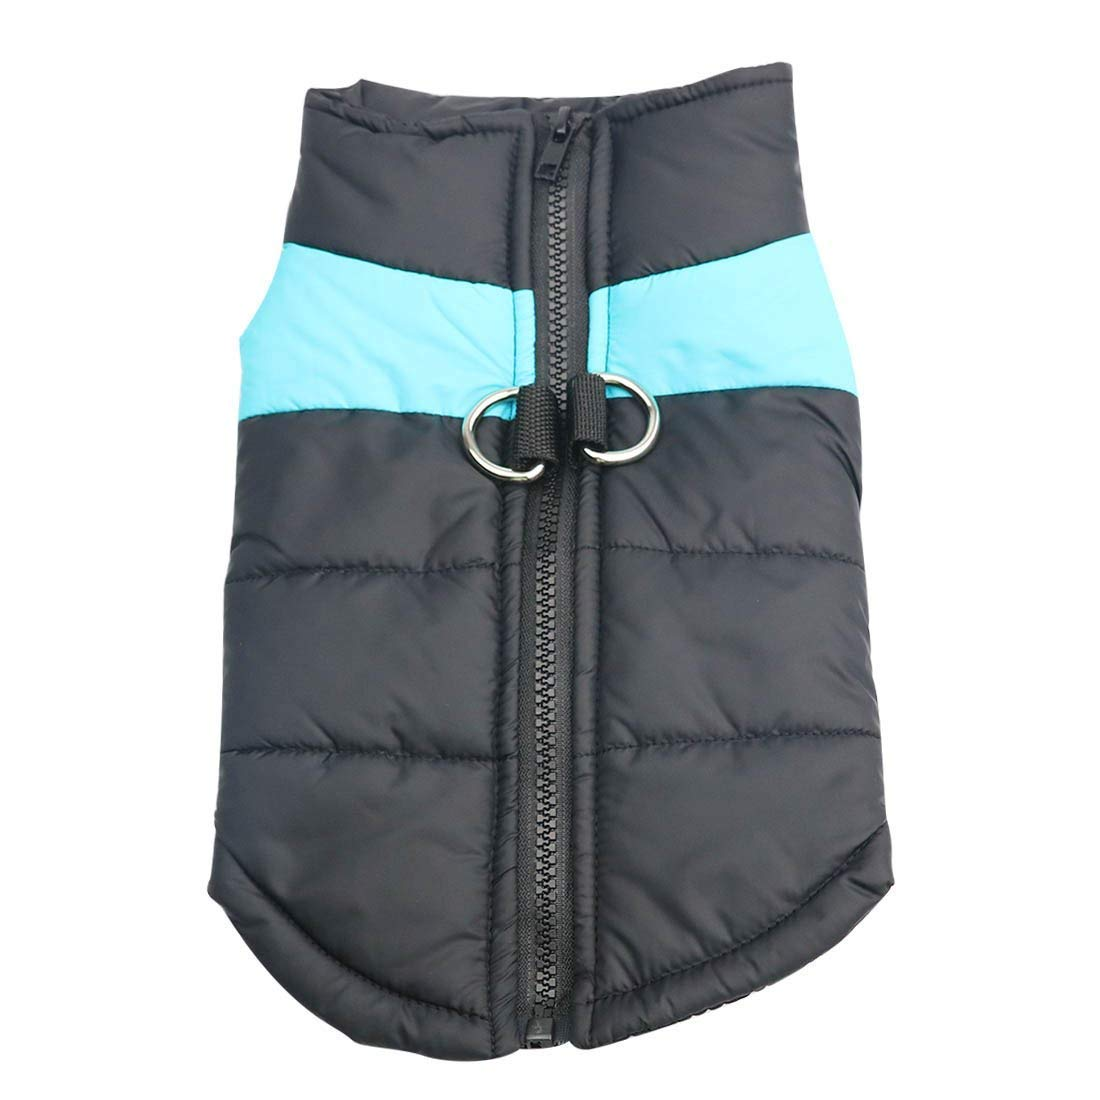 bluee 3XL bluee 3XL LLYU Pet Autumn and Winter Dog Clothes, Warm and Windproof Dog Cotton Clothes, ski Suit Big Dog Clothes (color   bluee, Size   3XL)